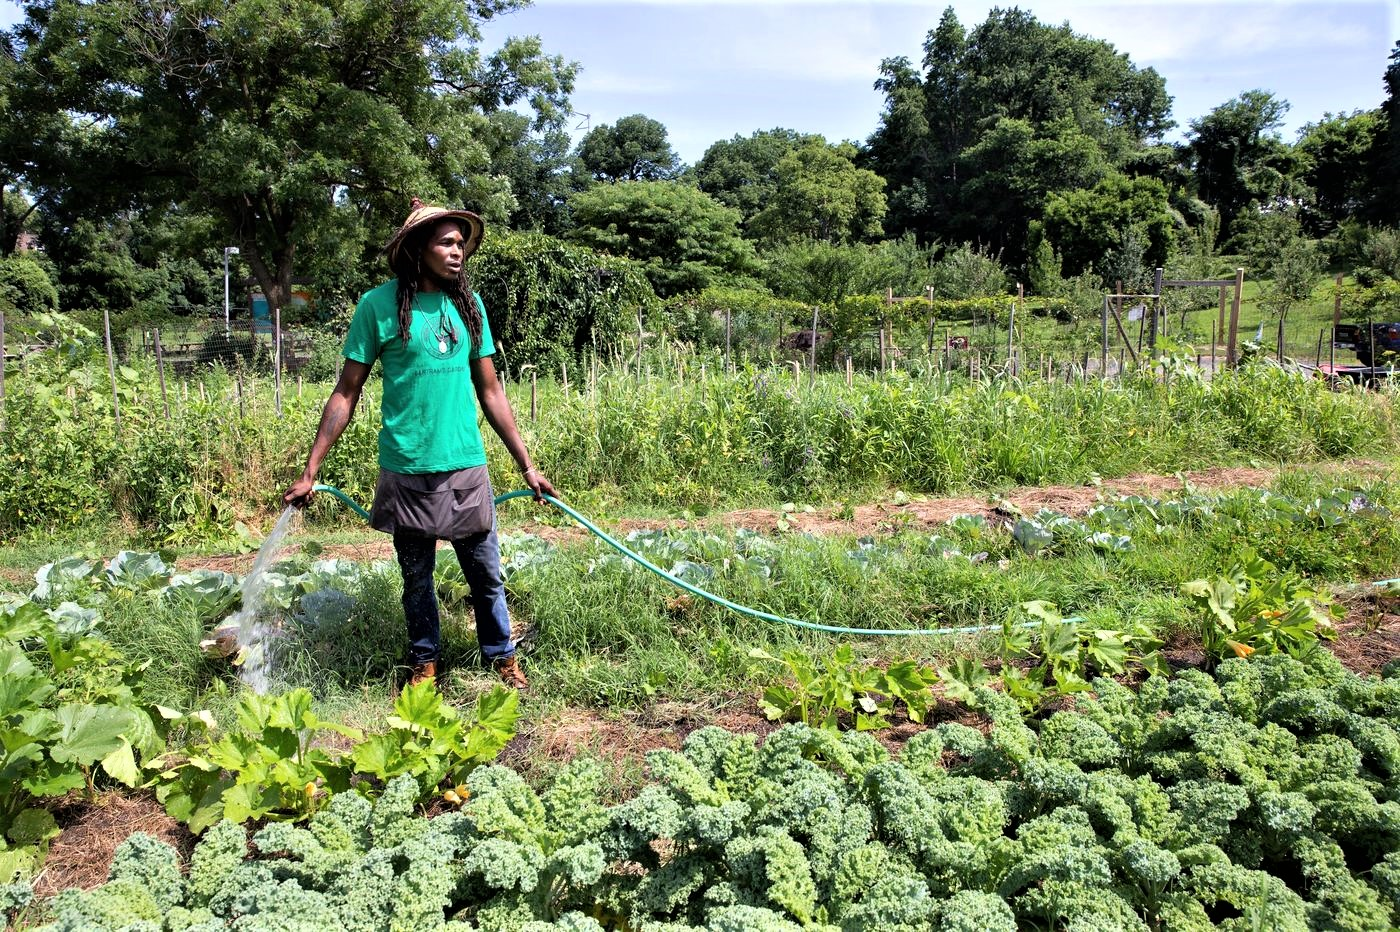 Philly's urban farming plan could include hundreds, possibly thousands, of vacant lots . March 20, 2019. JESSICA GRIFFIN / FILE PHOTOGRAPH Philly.com